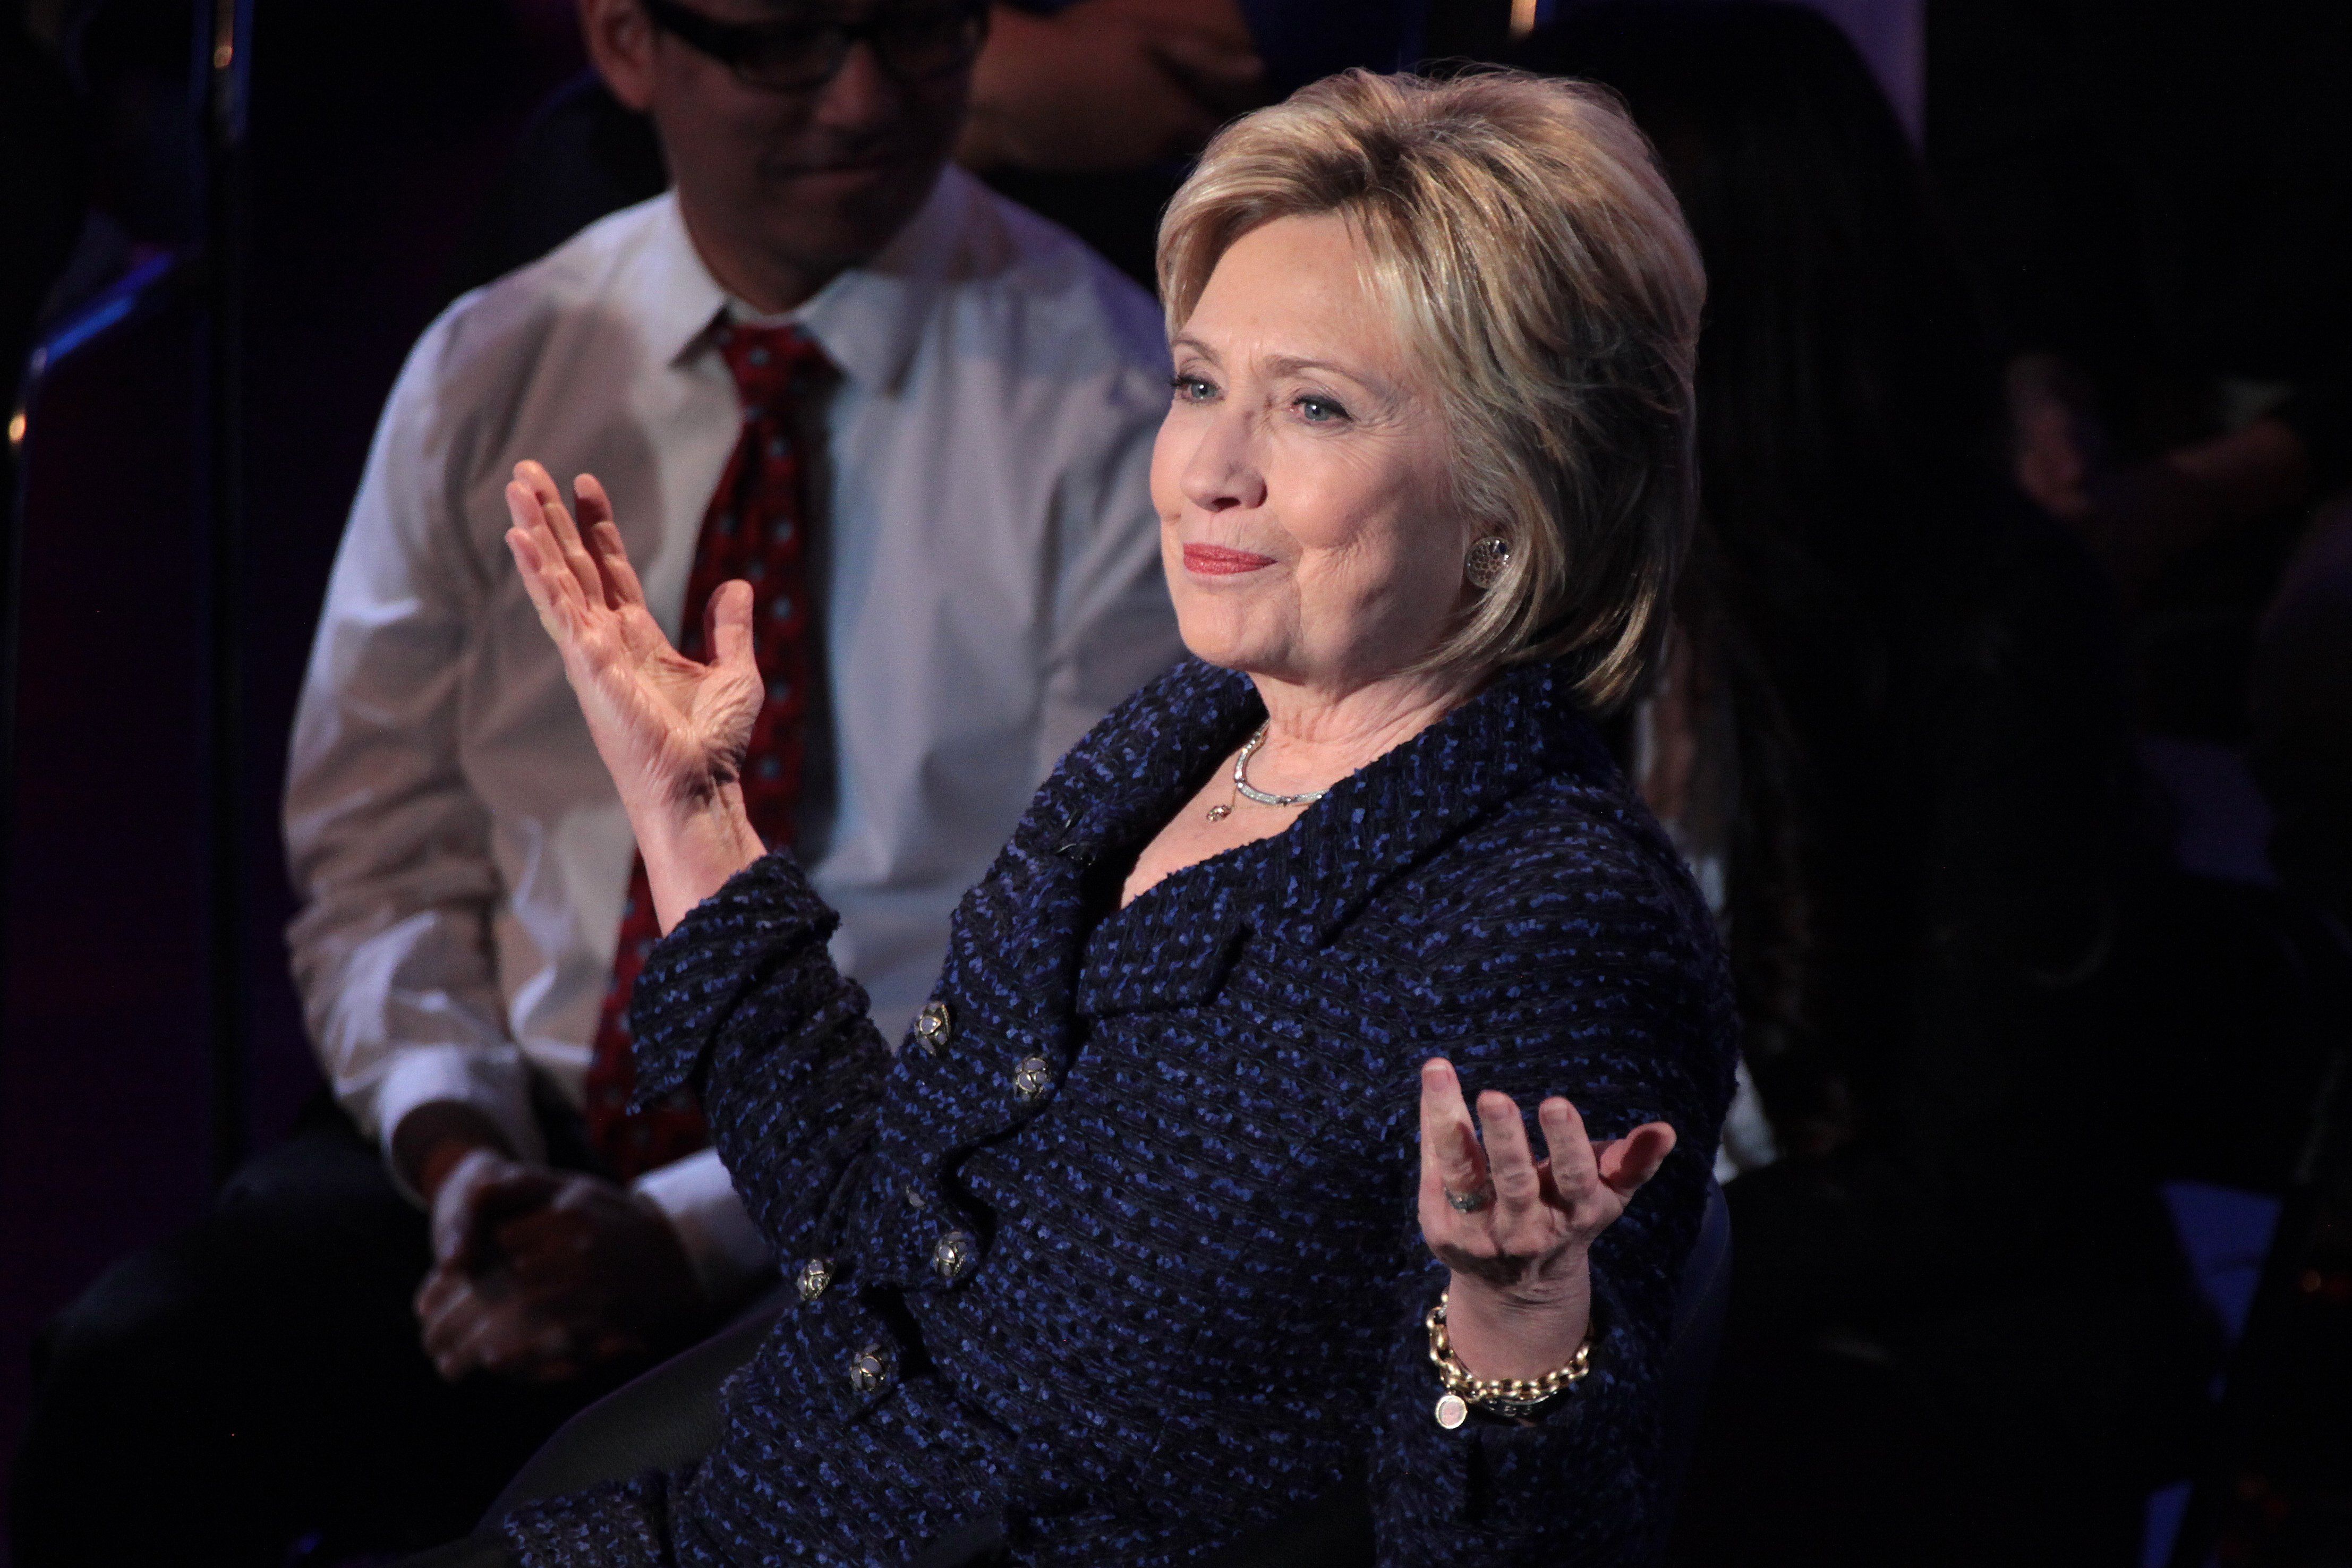 Hillary Clinton calls Russian uranium bribery scandal 'baloney' after Foundation received millions, then attacks GOP Featured